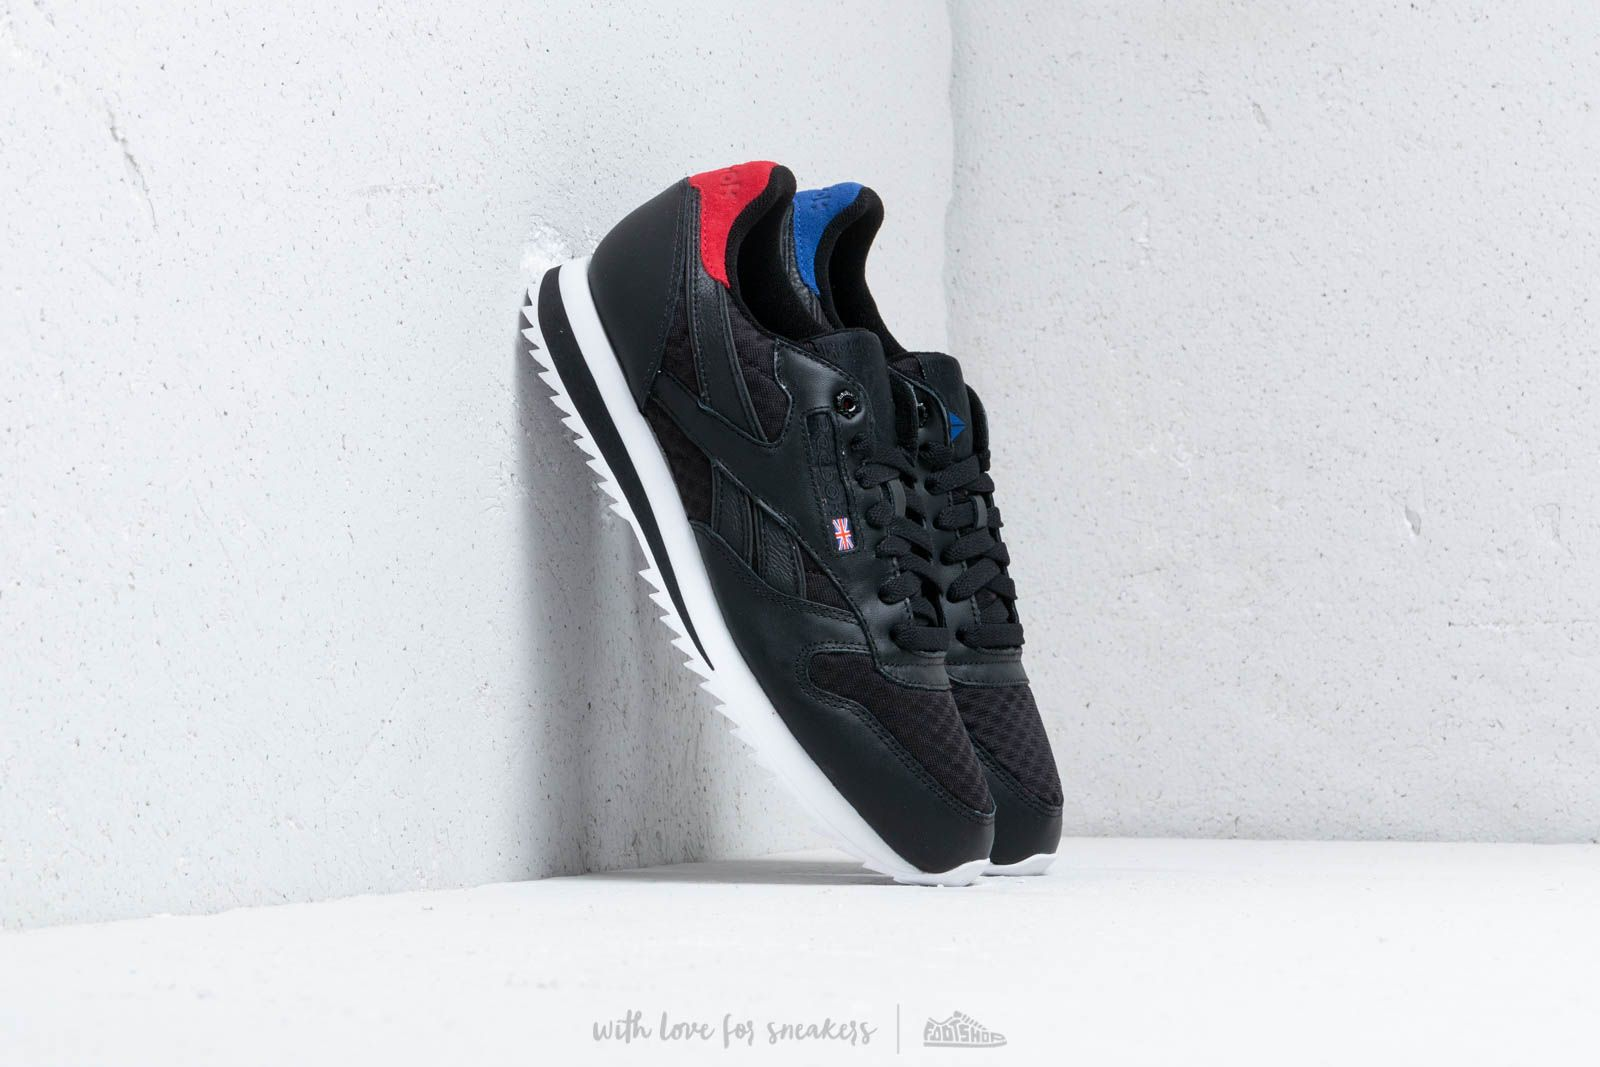 Reebok Classic Leather HC Black/ Excellent Red/ Team Dark Royal/ White at a great price 1 569 ГРН купите на Footshop.ua